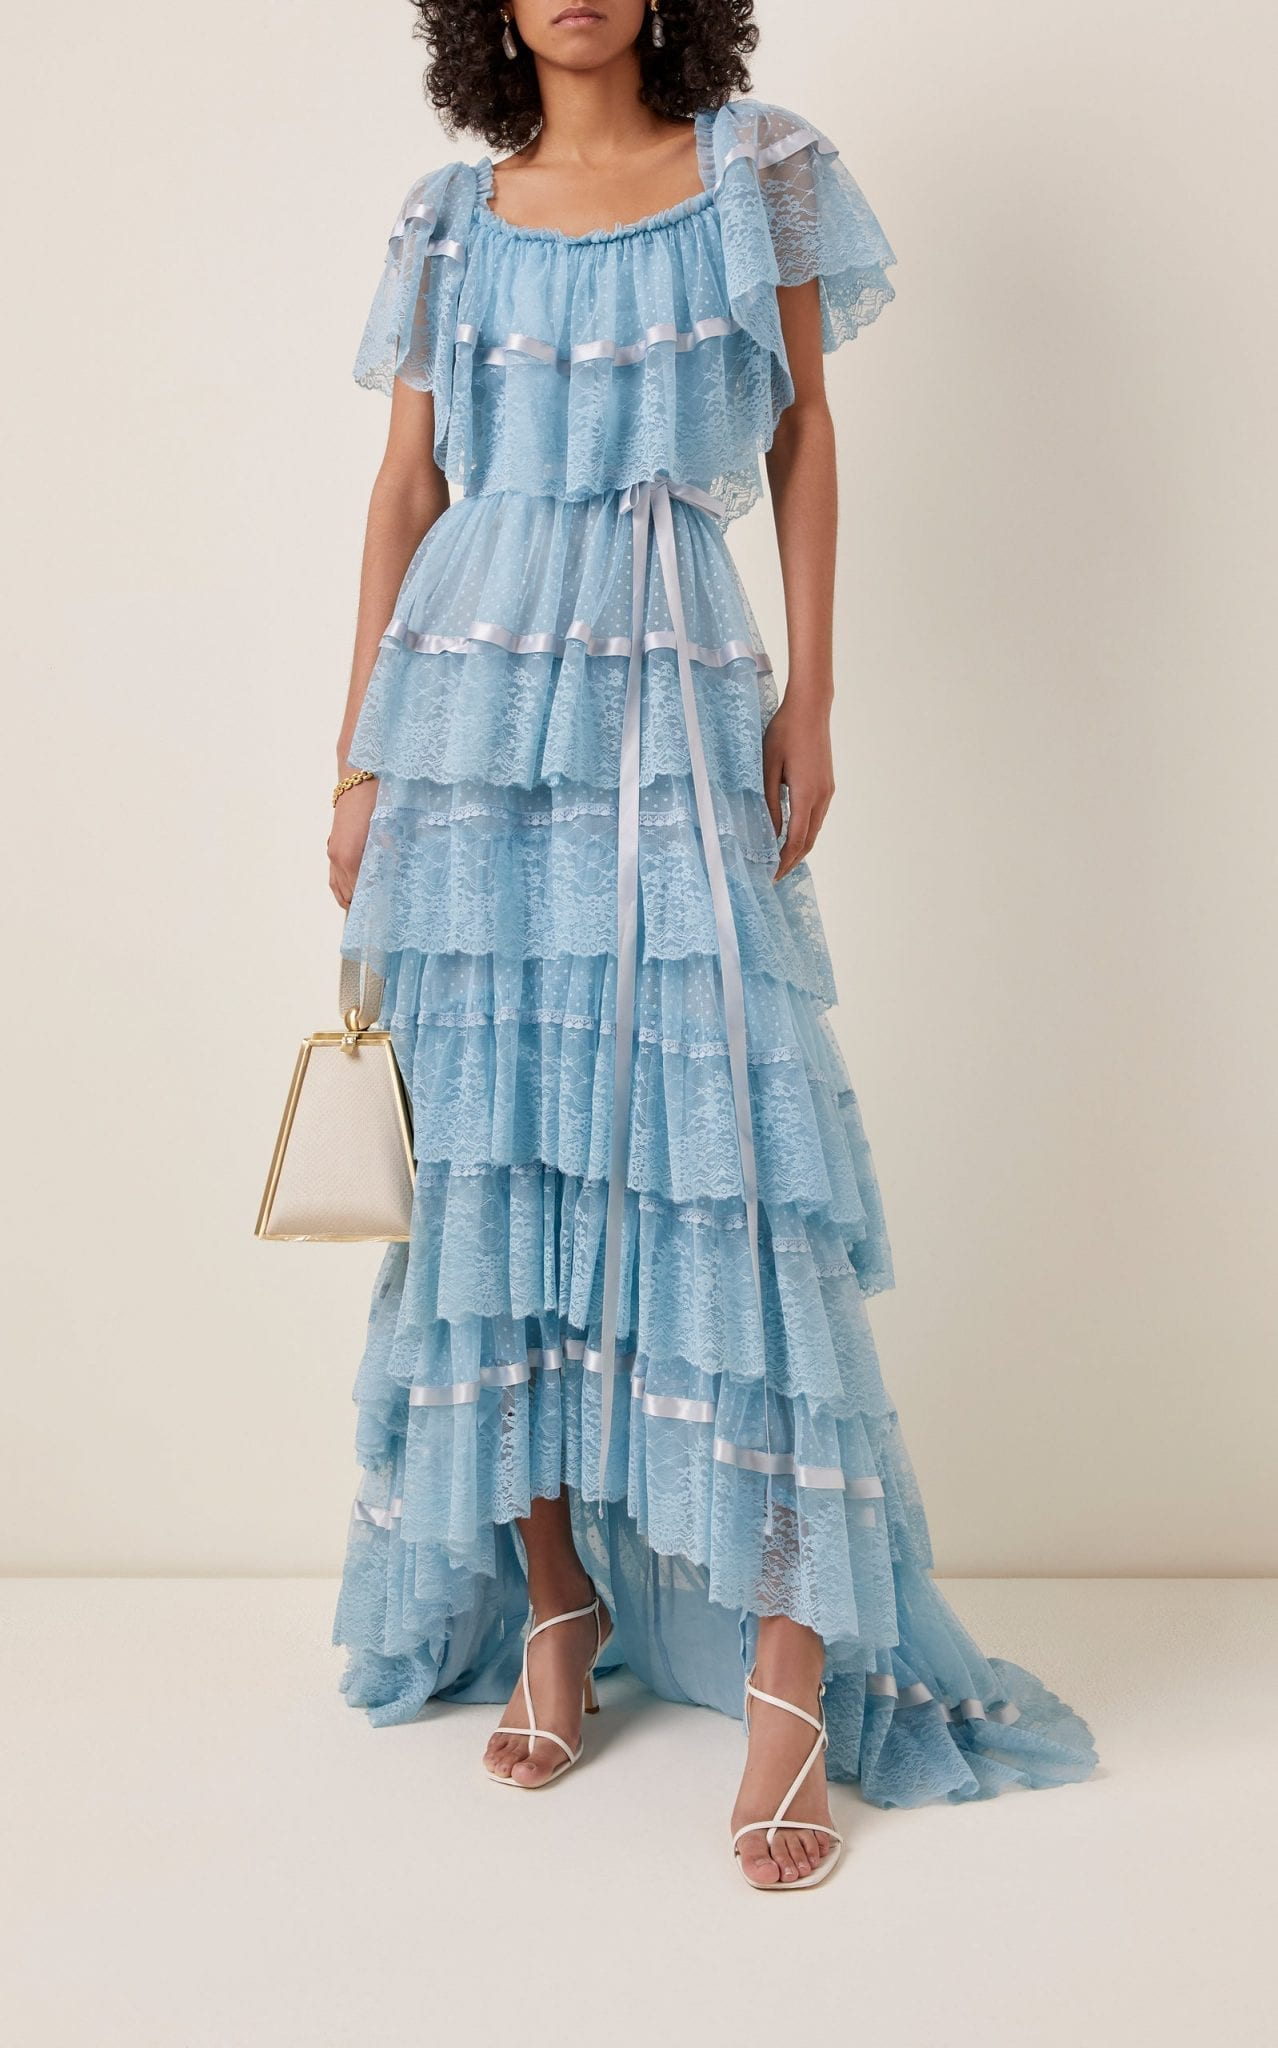 LOVESHACKFANCY Fabia Ruffled Tulle Maxi Dress